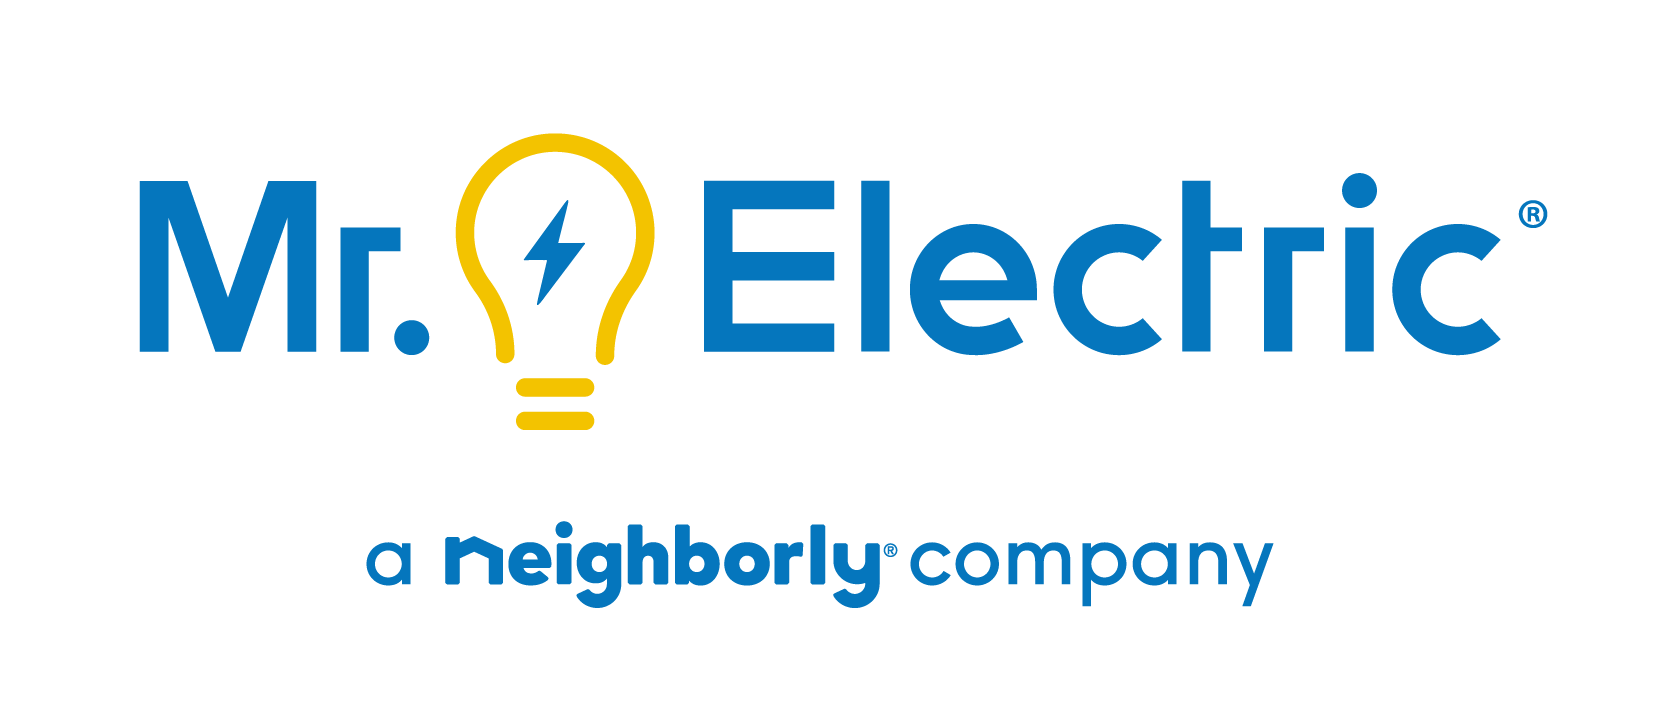 Mr. Electric of Douglasville, GA